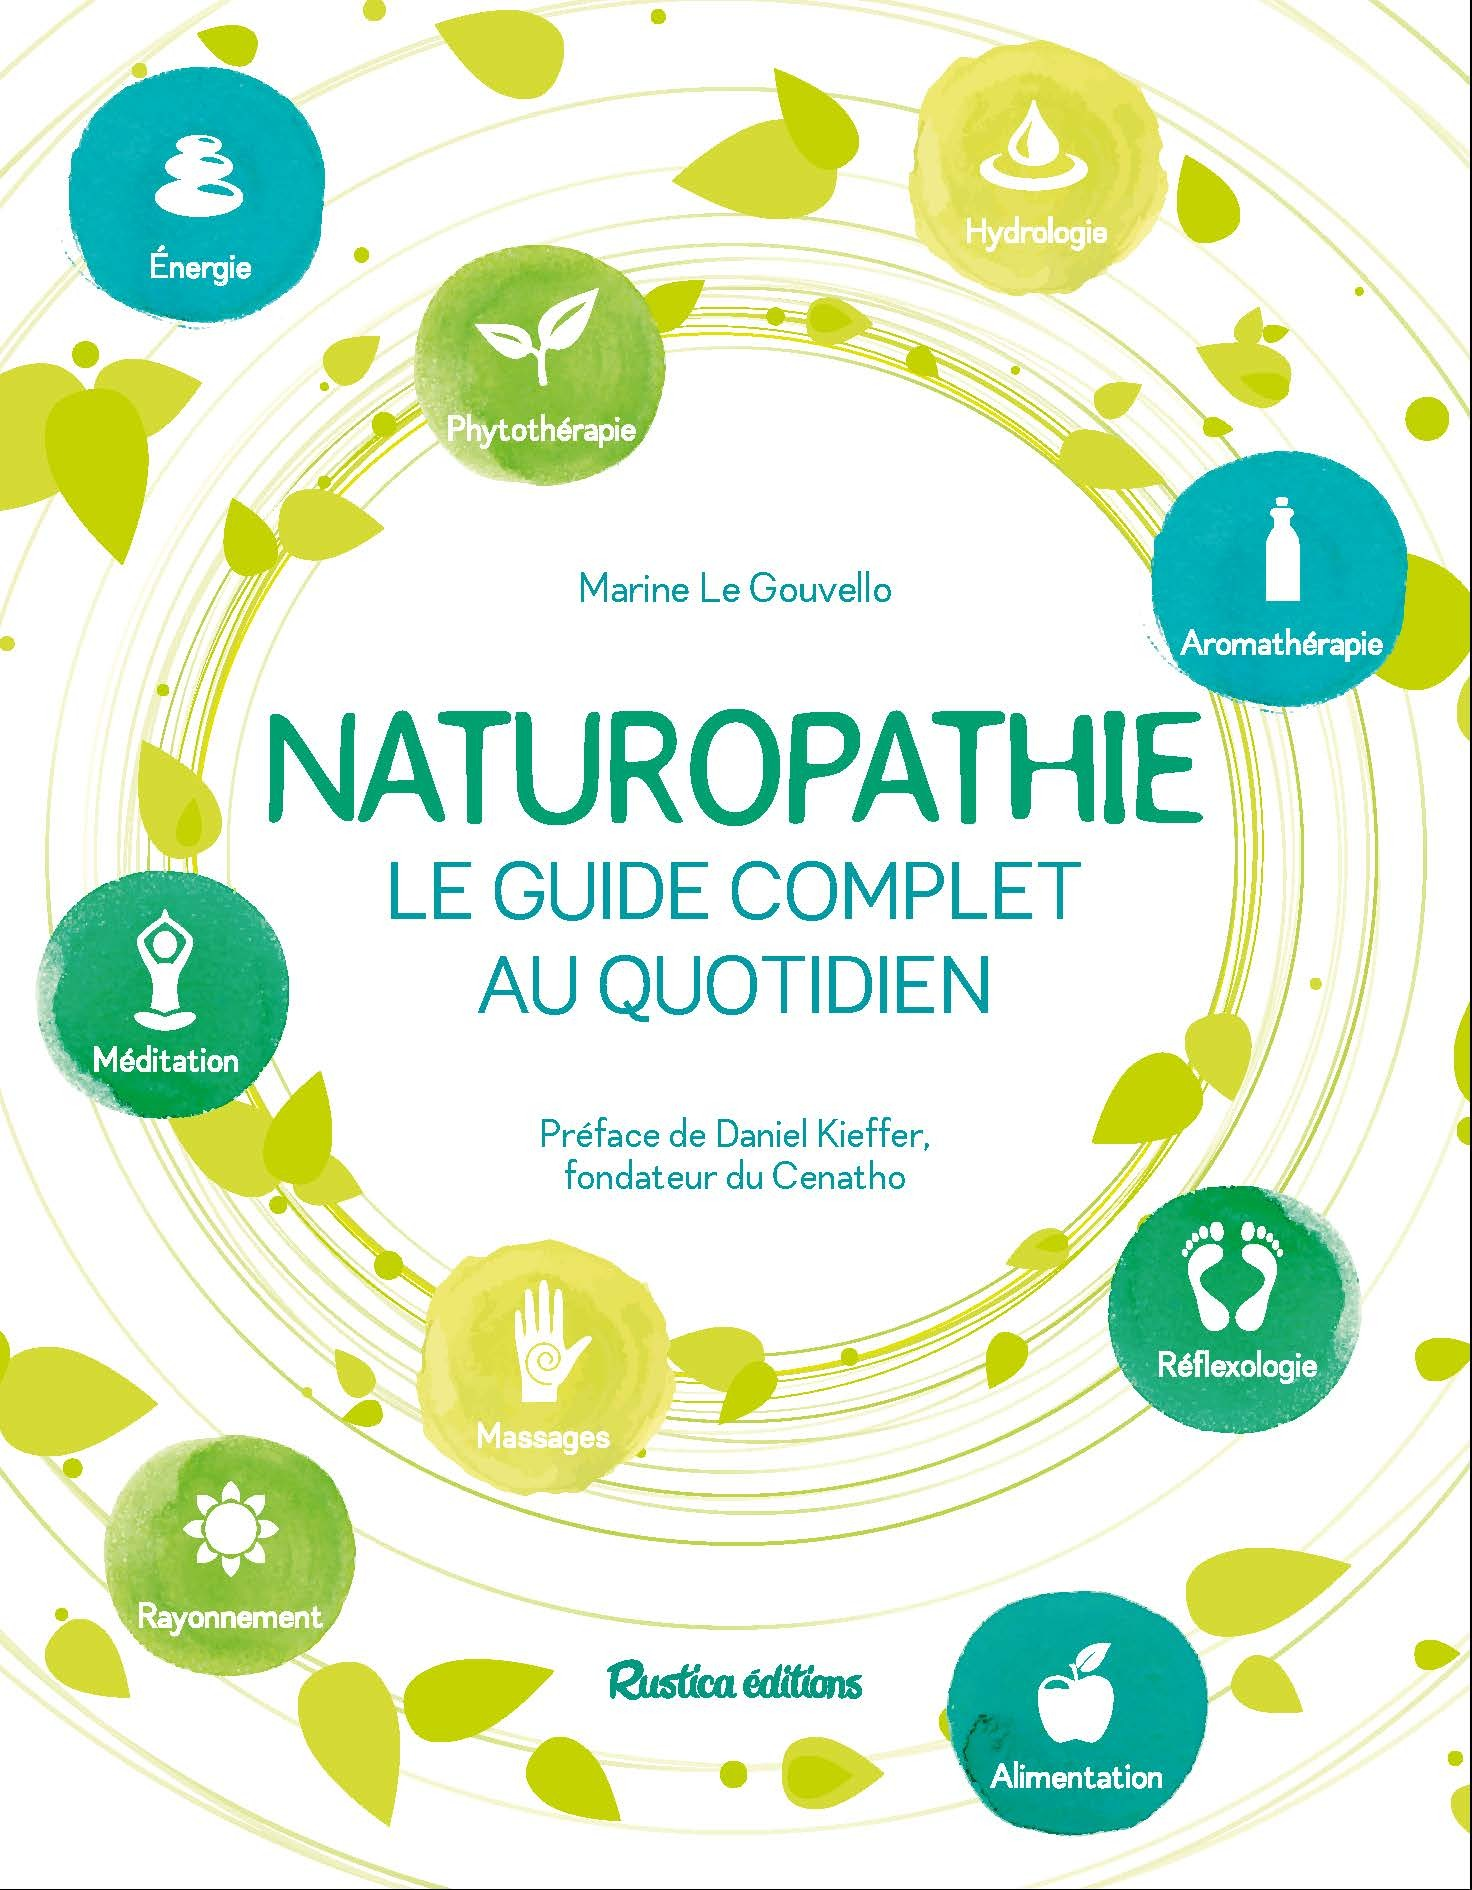 NATUROPATHIE, LE GUIDE COMPLET AU QUOTIDIEN